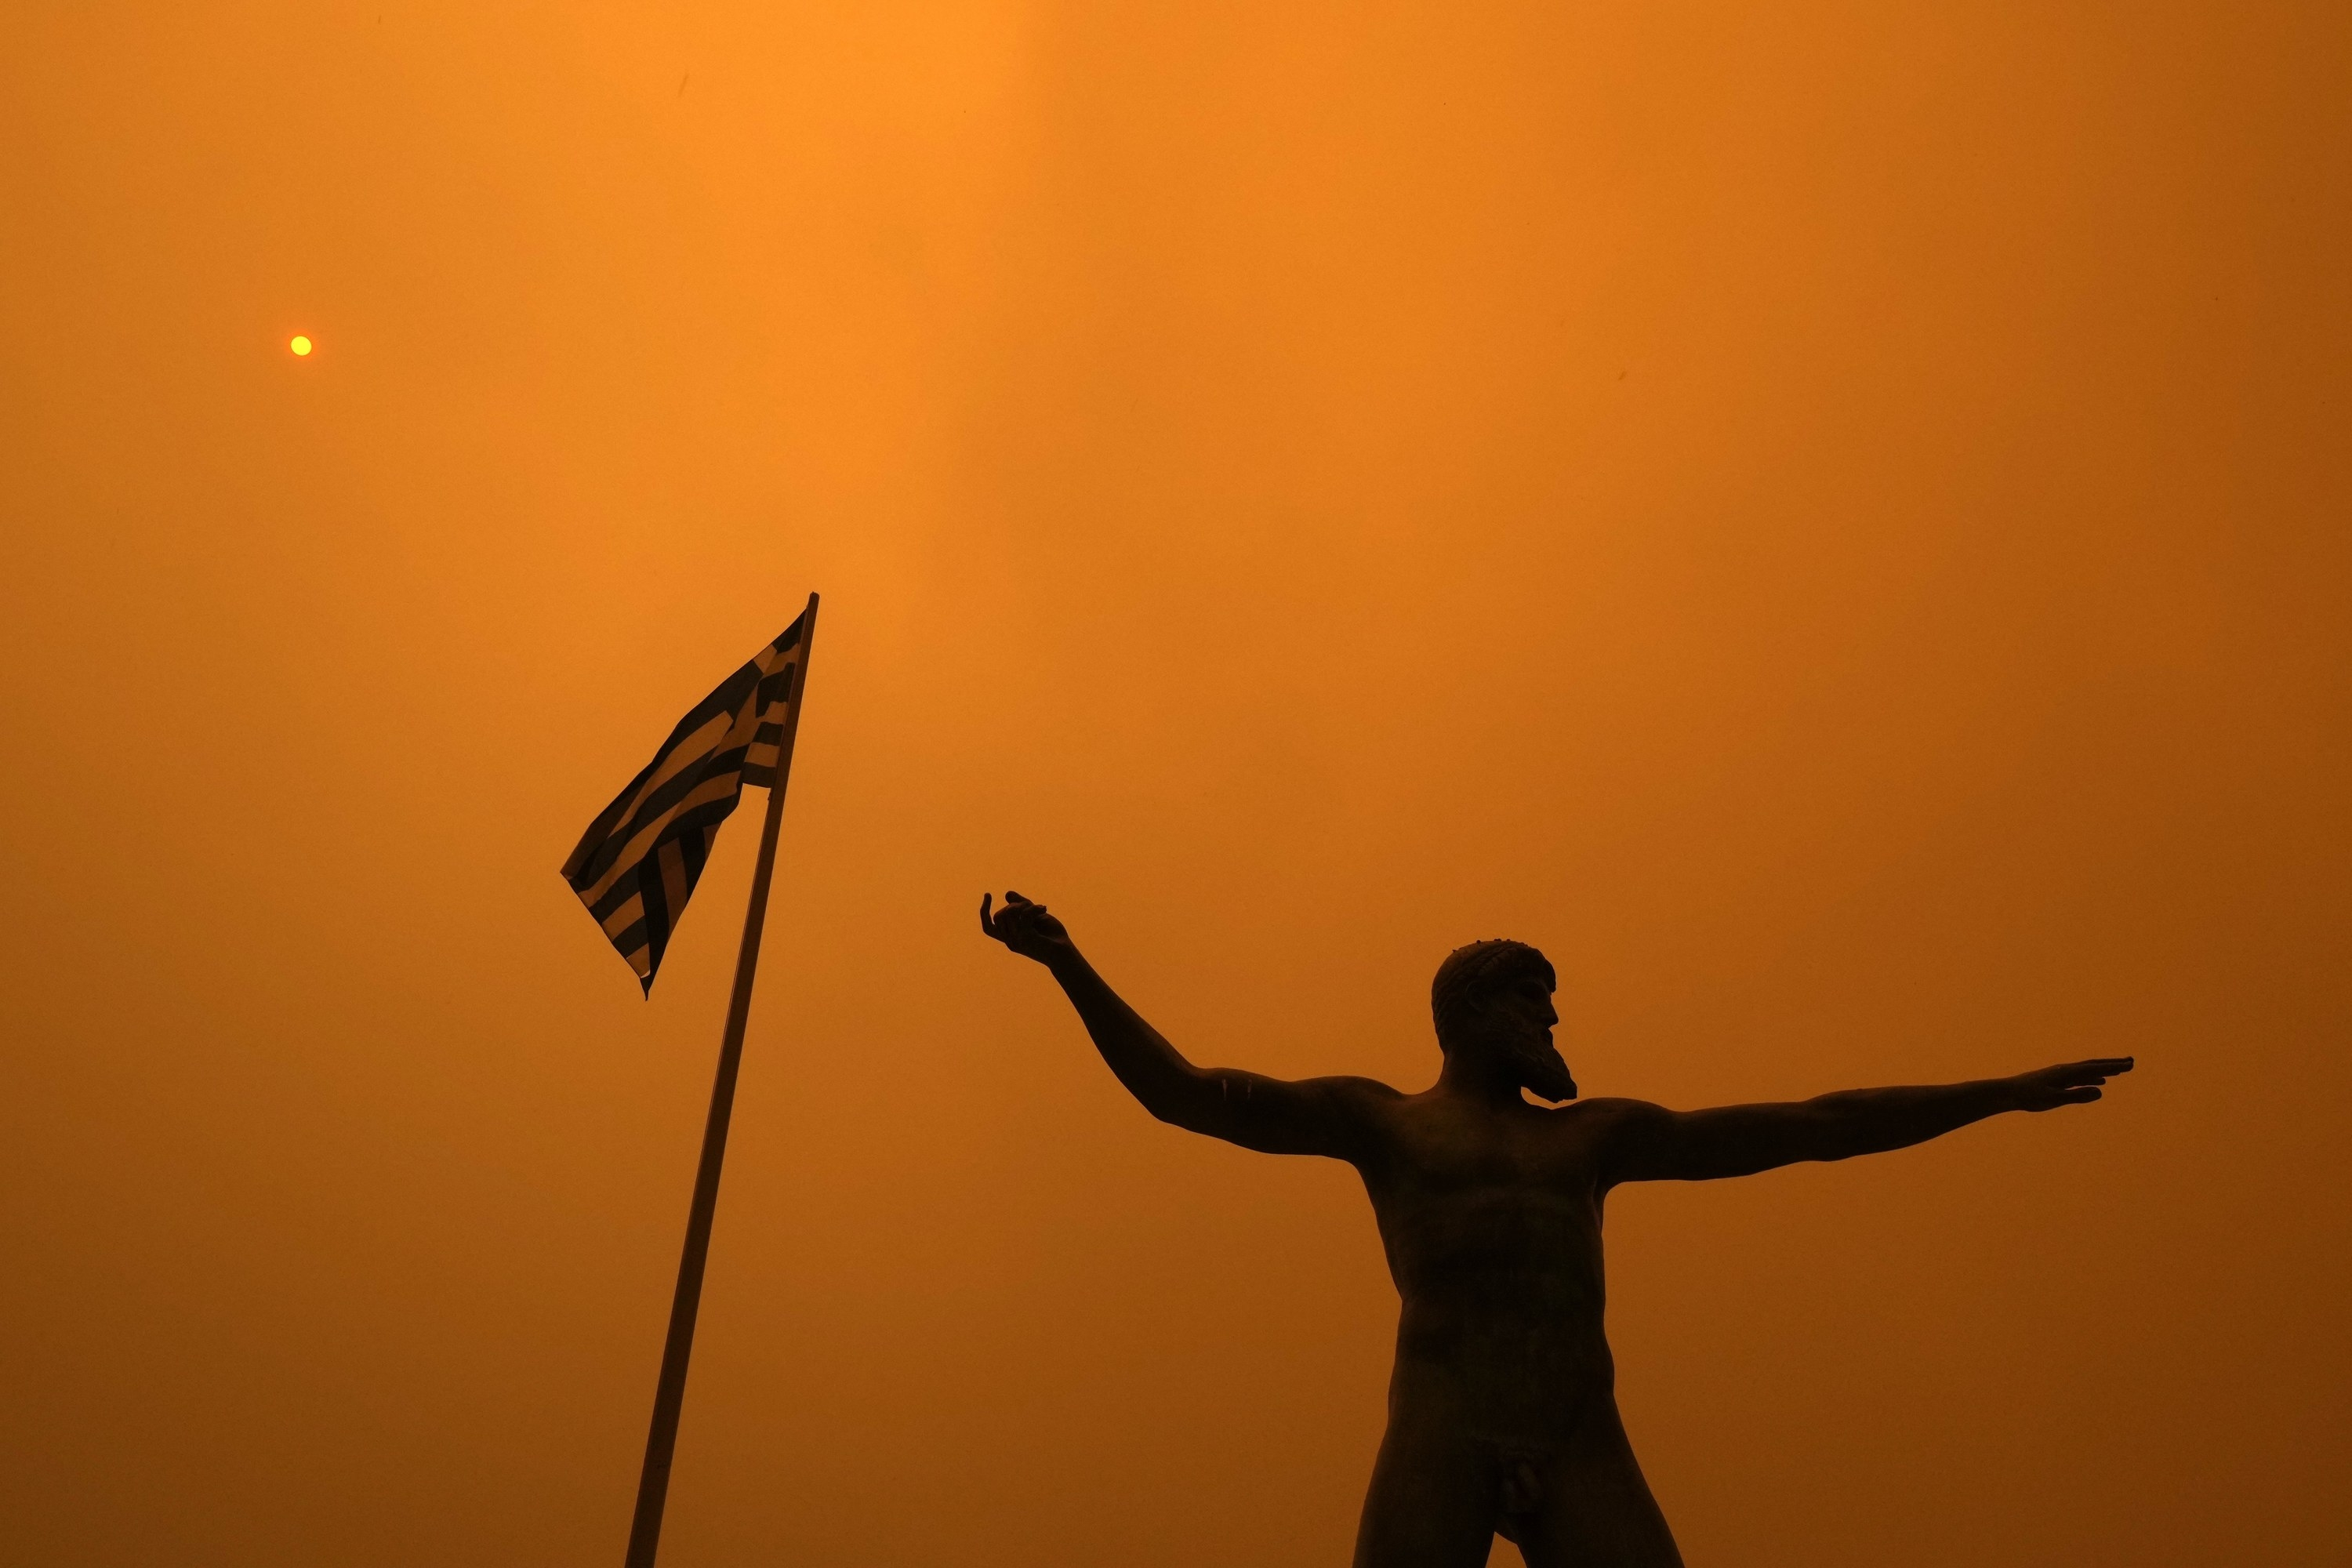 A sculpture of a Greek god stands beside a Greek flag, both silhouetted against a hazy sky